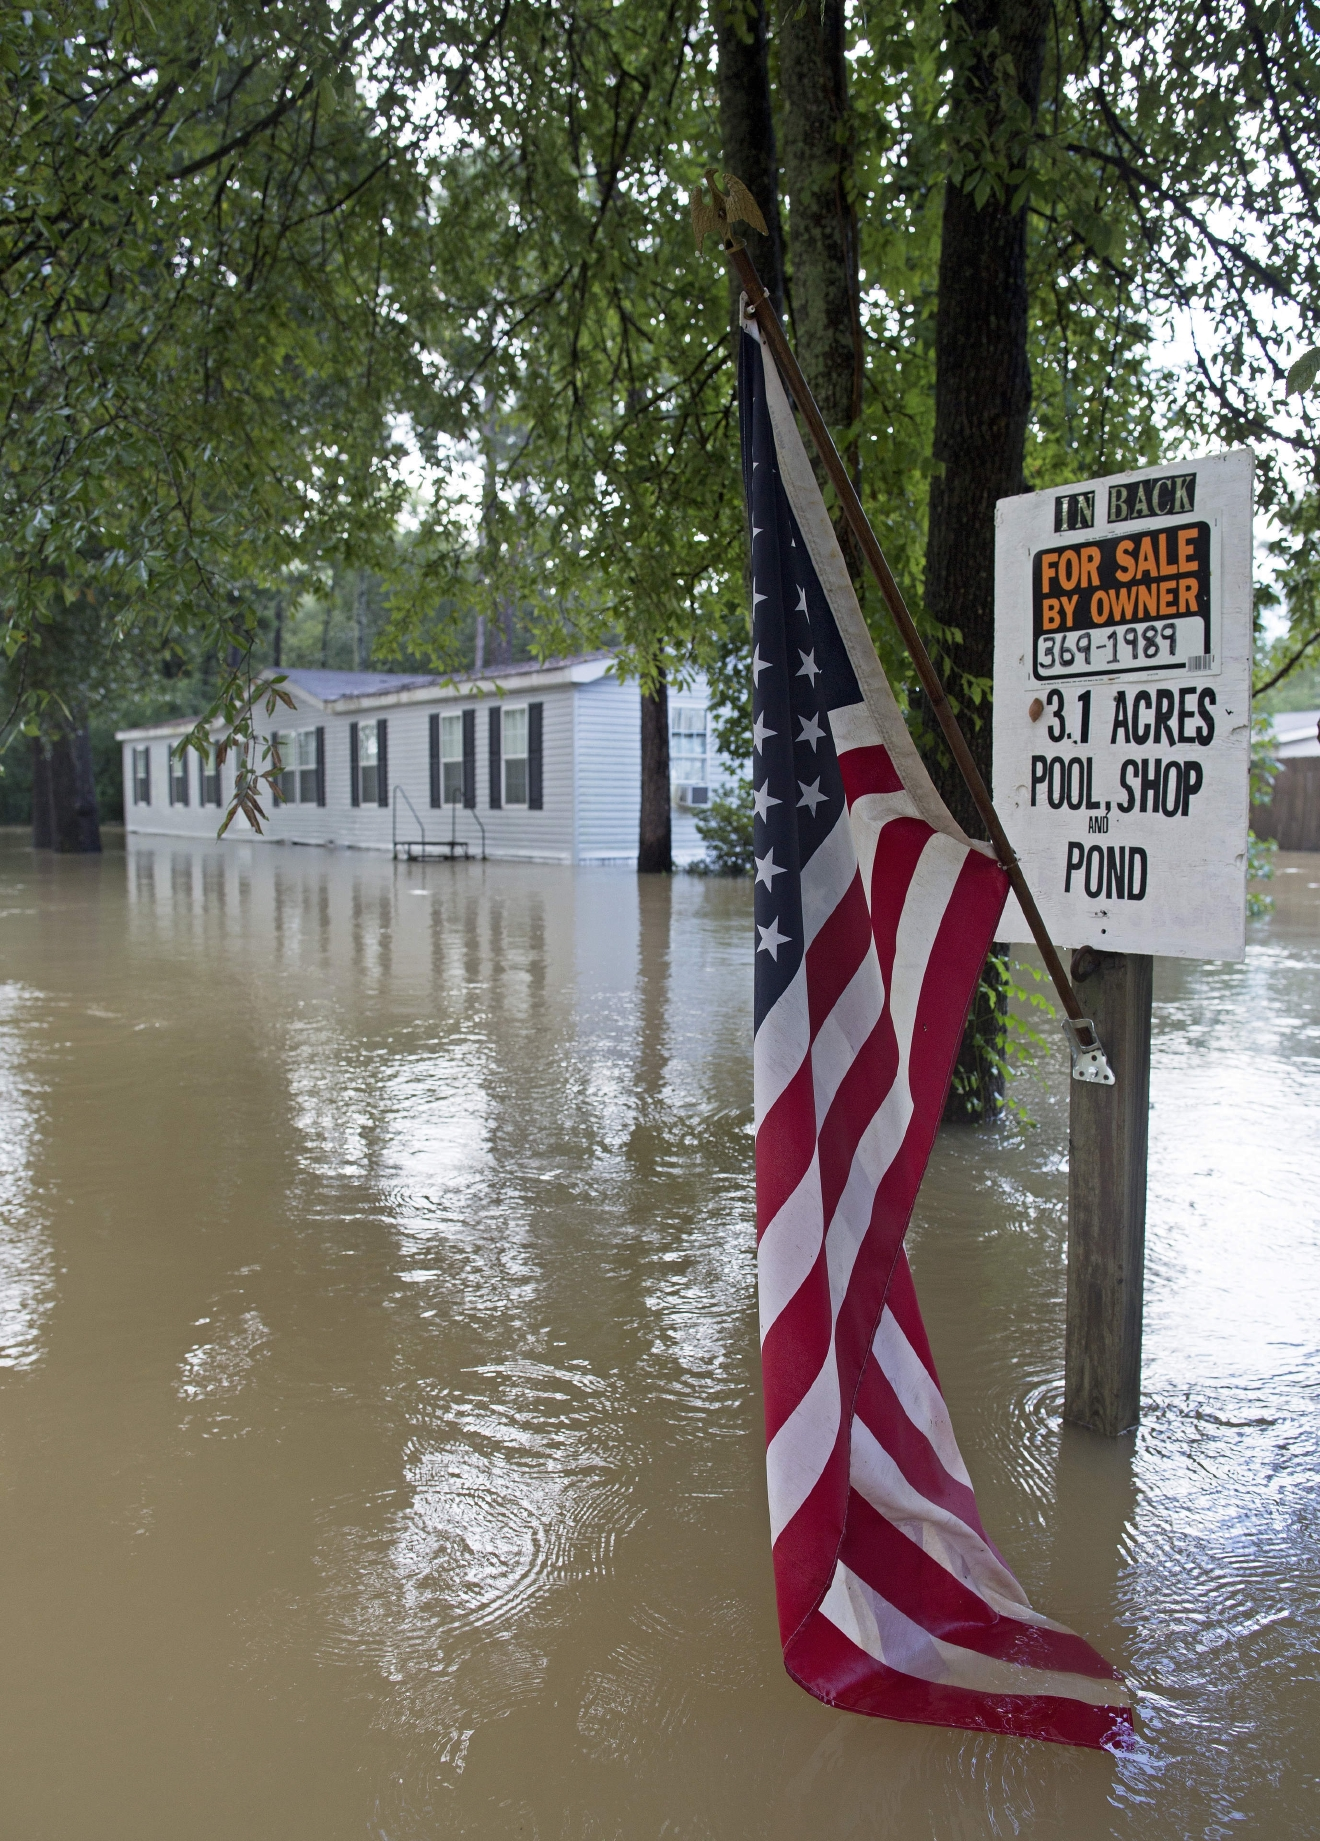 An American flag hangs in the water next to a for sale sign in flood waters in Walker, La., Monday, Aug. 15, 2016. Flood waters continued to cause problems throughout the area. (AP Photo/Max Becherer)